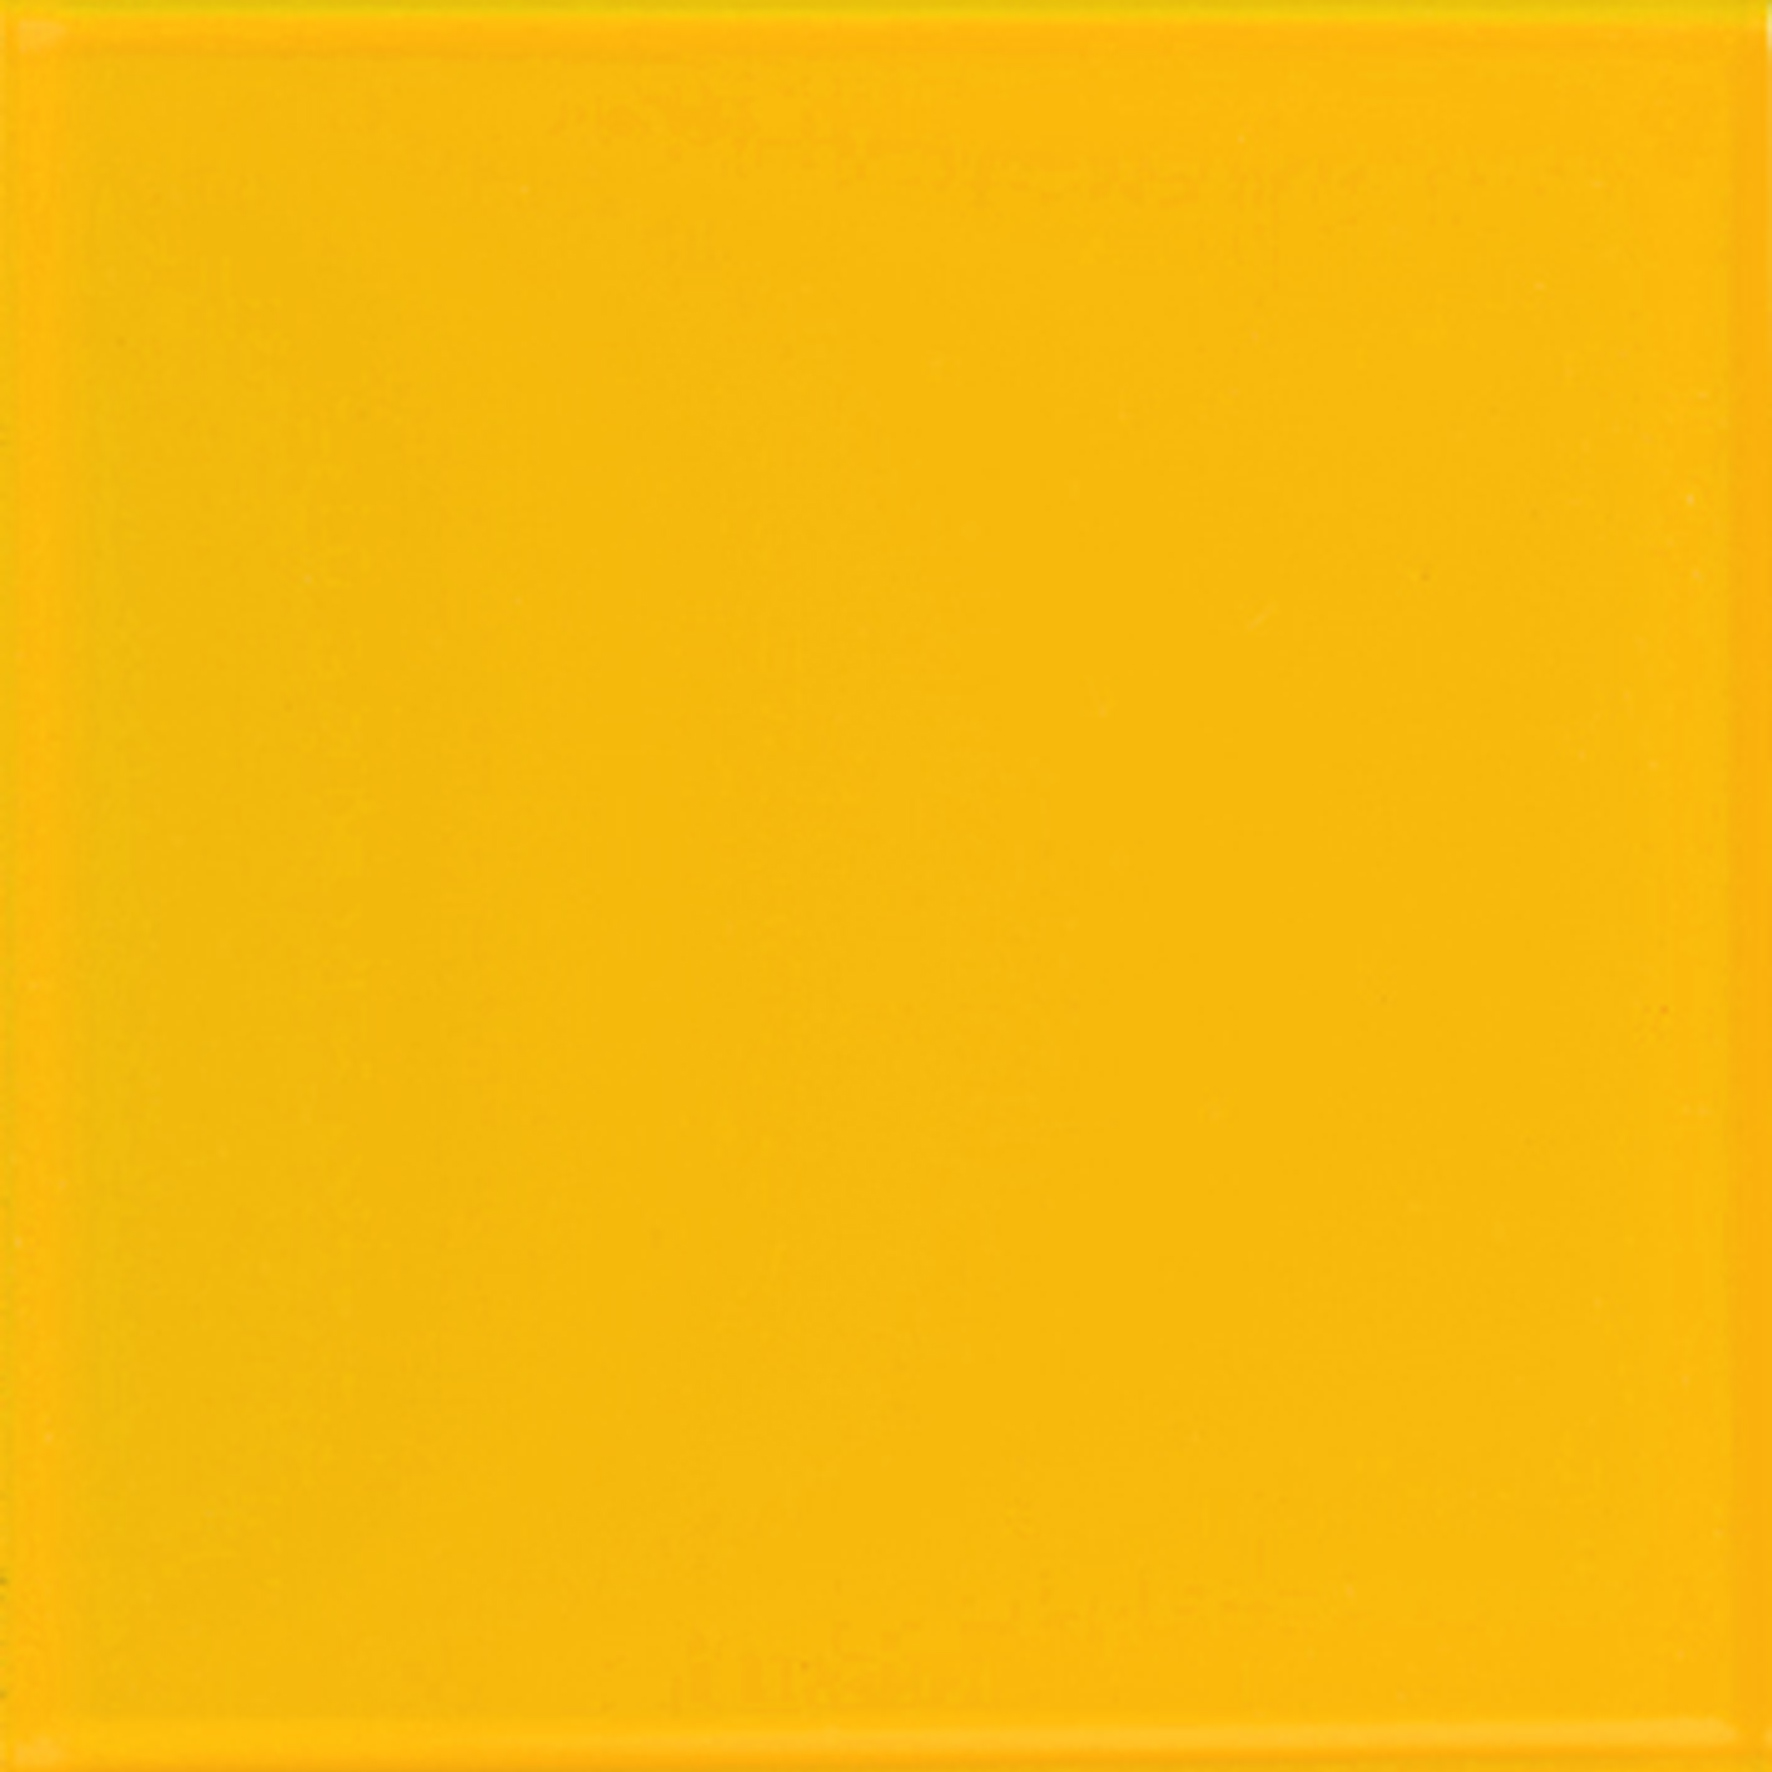 Homeplanner Yellow Colour Image Design Decoration